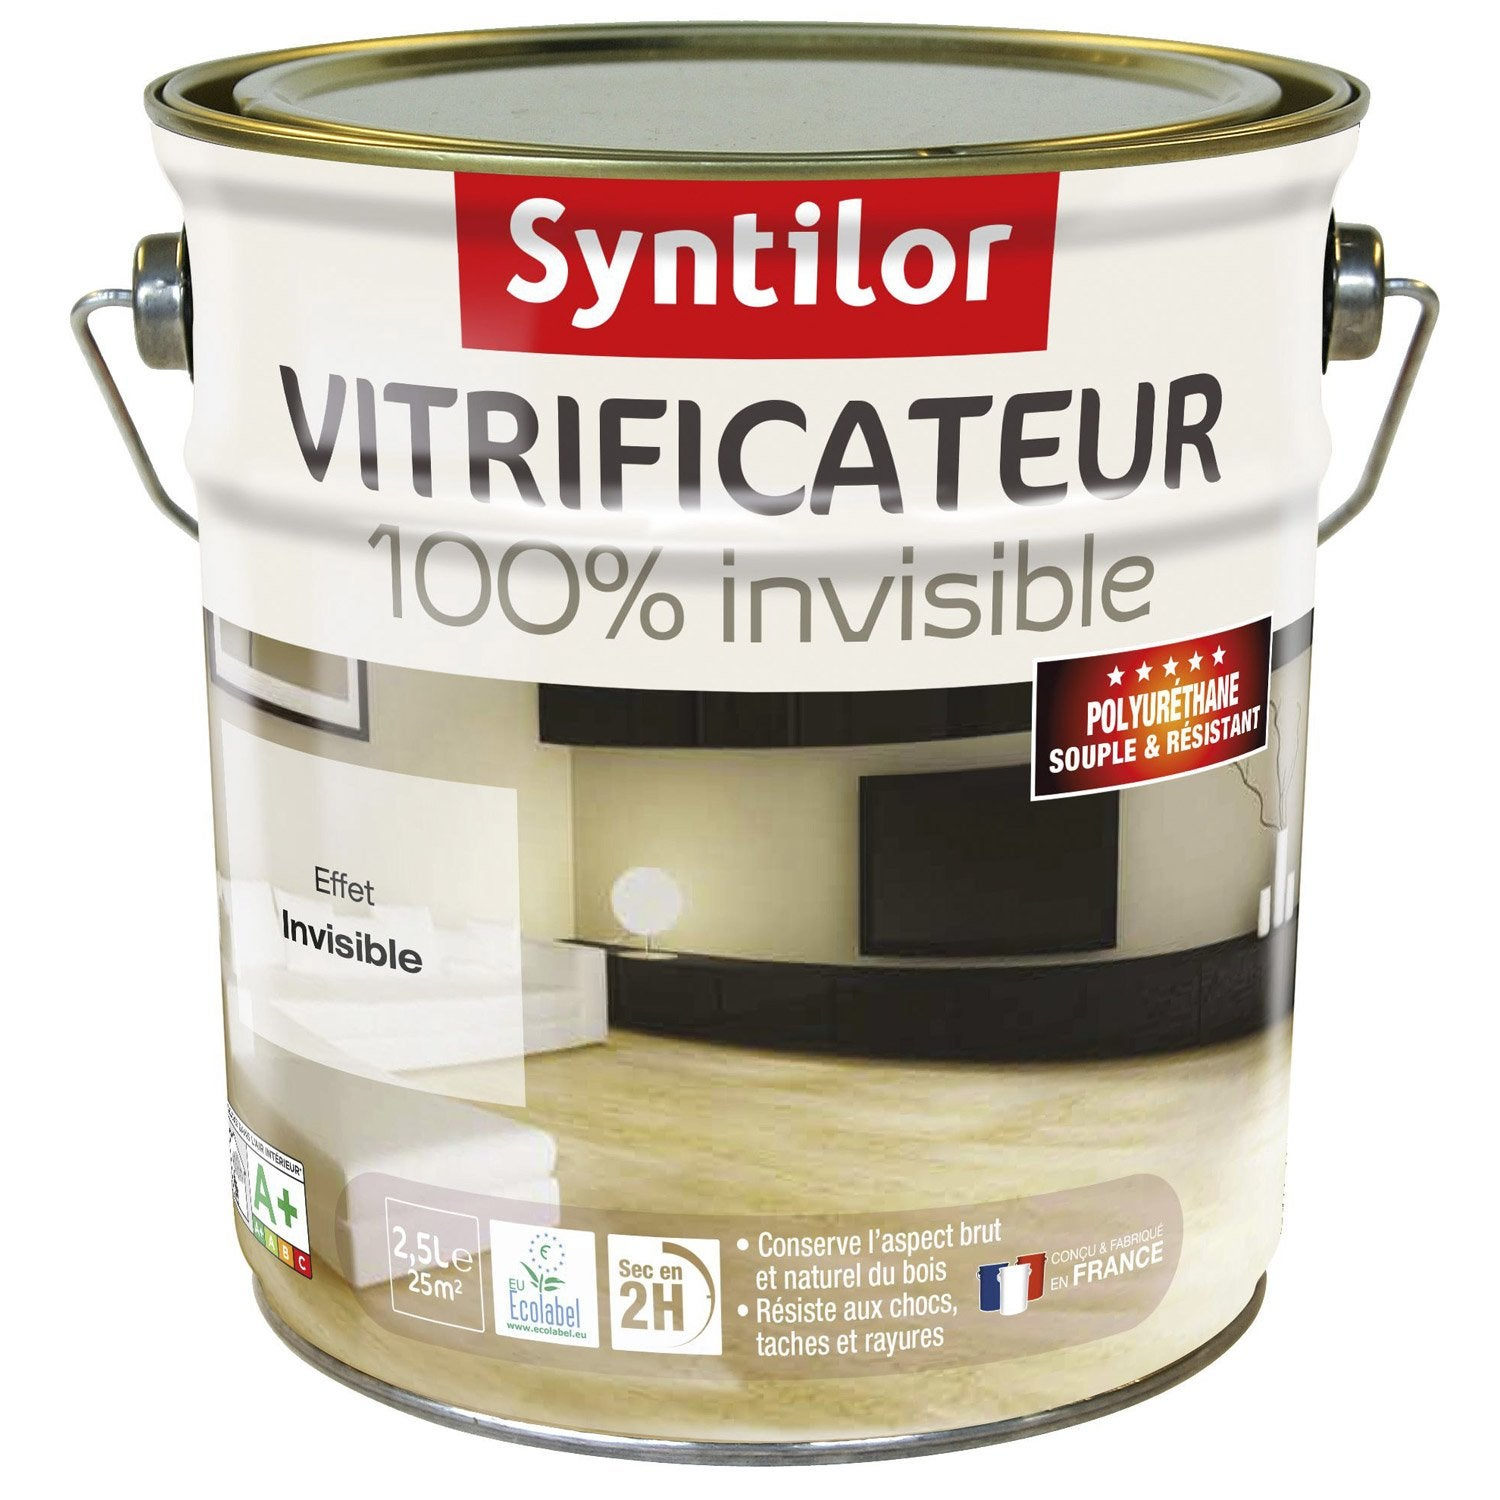 Vitrificateur parquet 100 invisible syntilor incolore 2 for Converse logo interieur ou exterieur